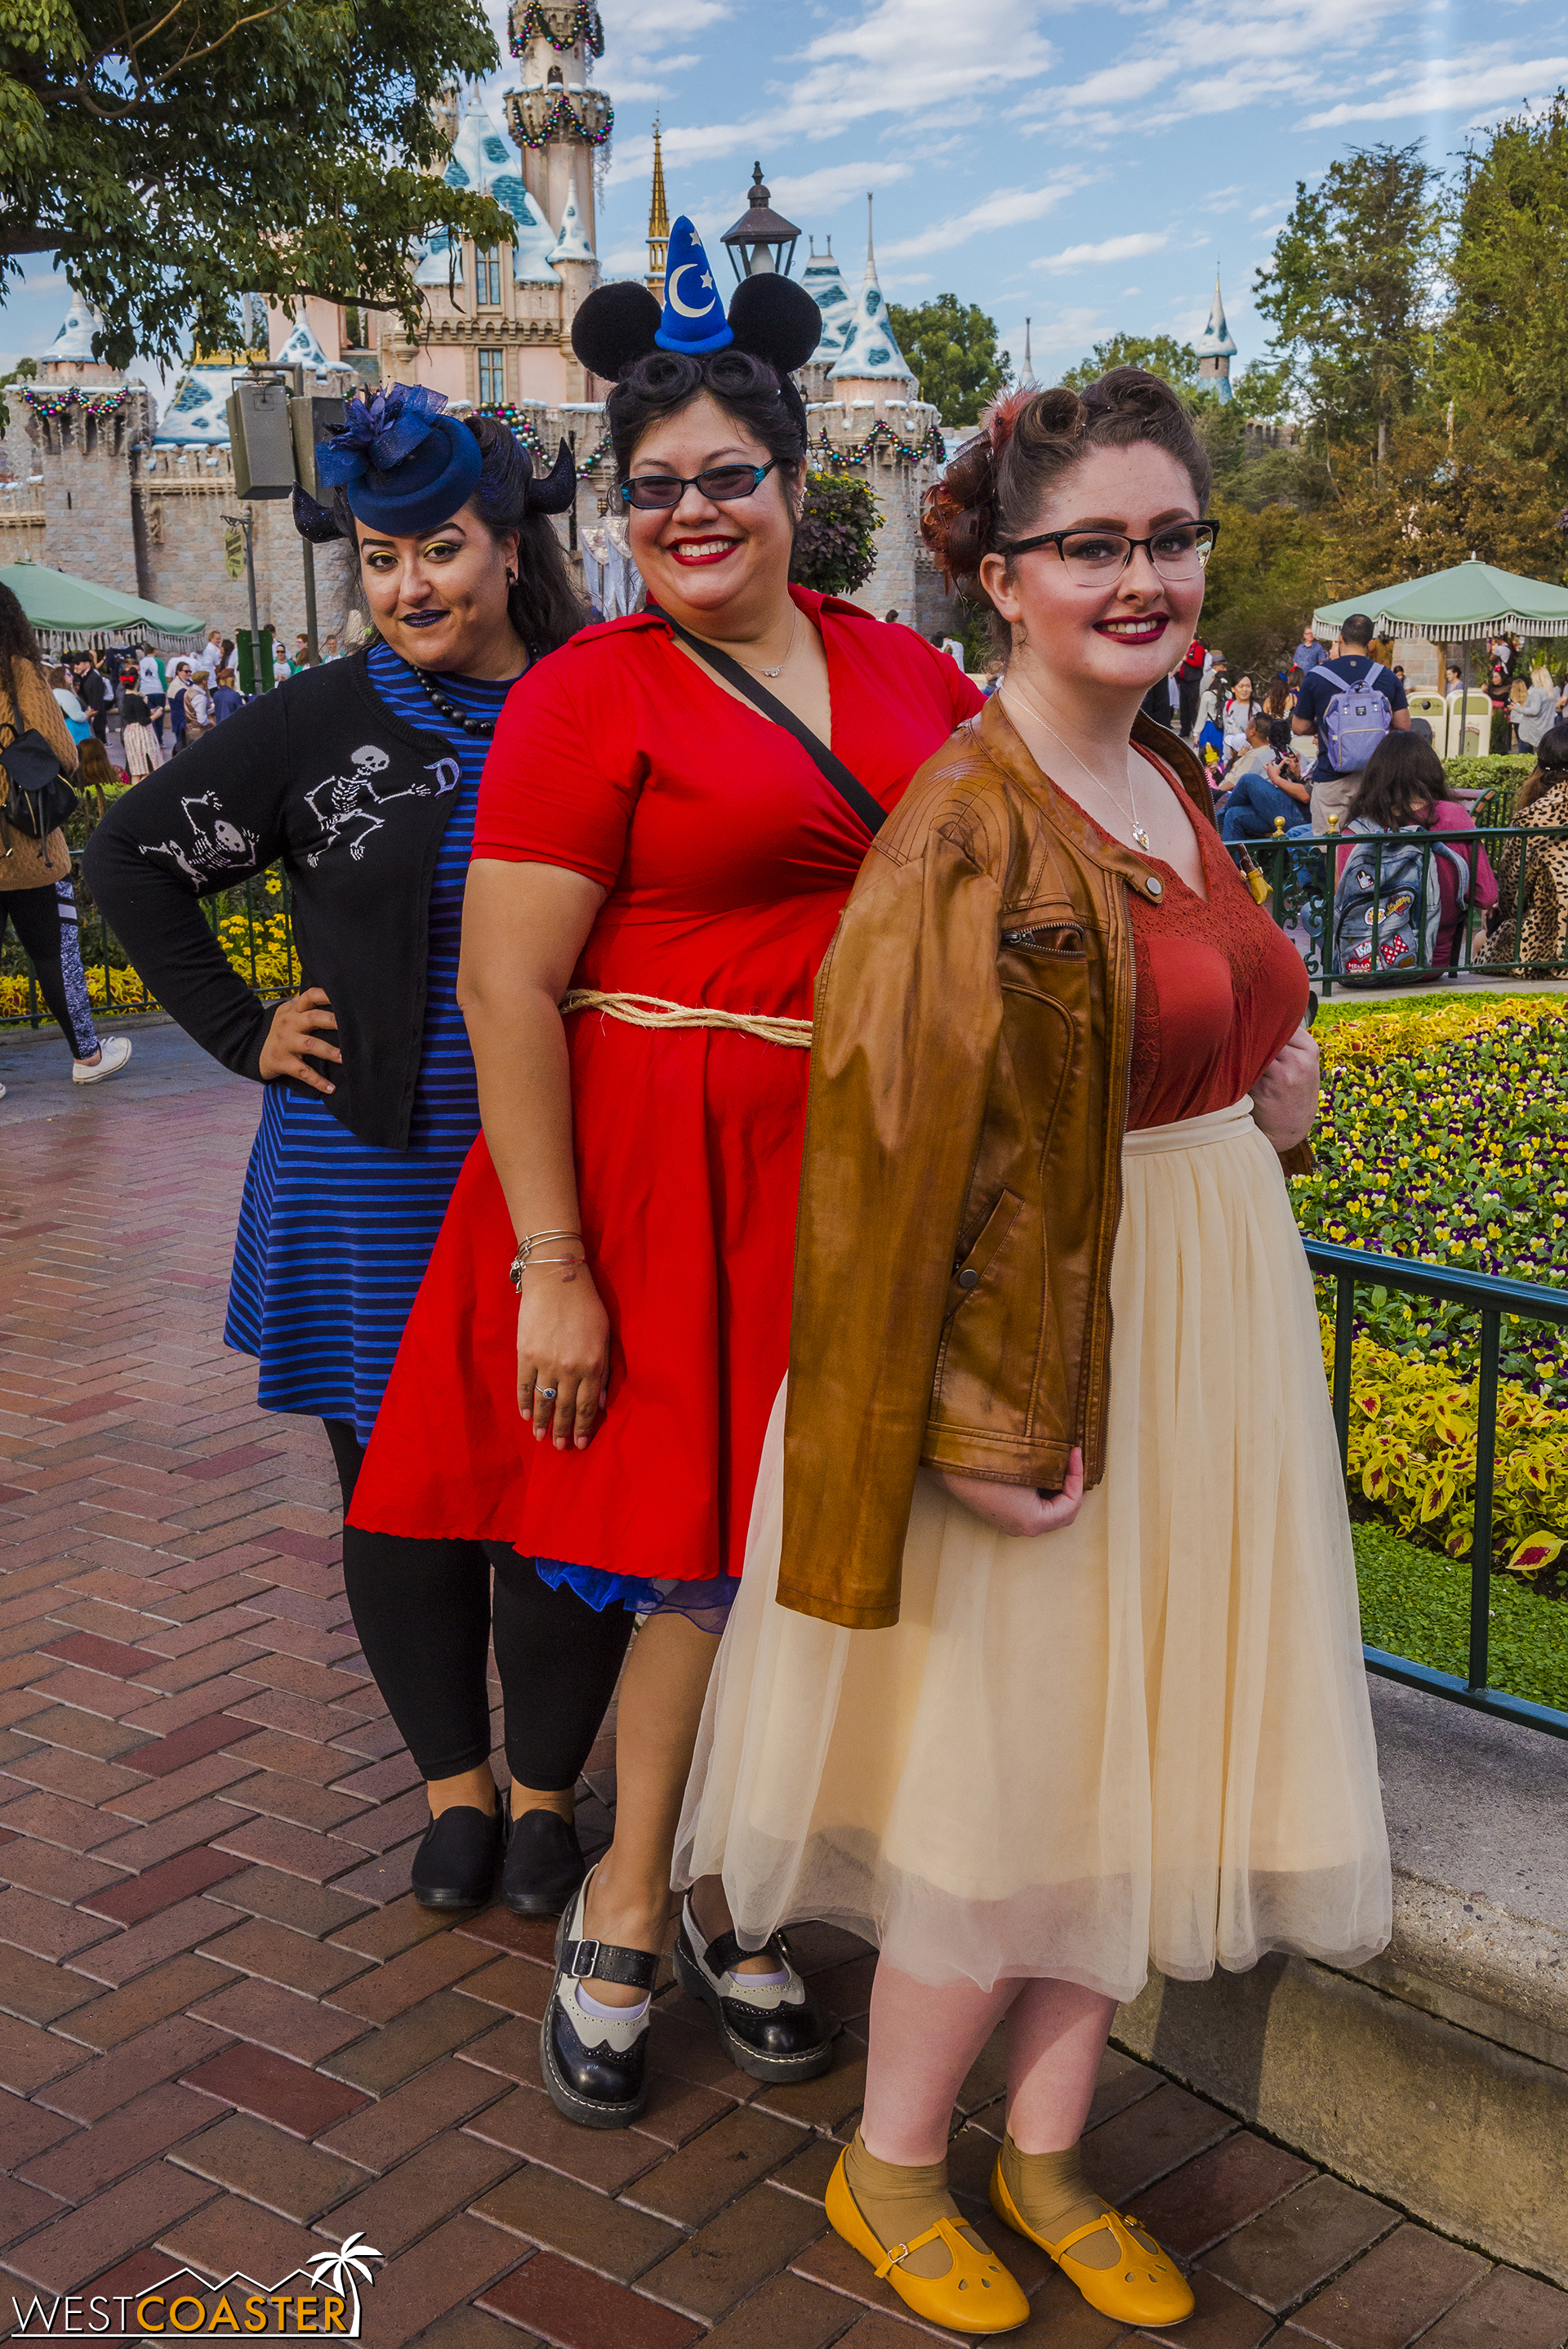 Back to front, Chernabog, Sorcerer Mickey, and a broom create a Fantasia trio!